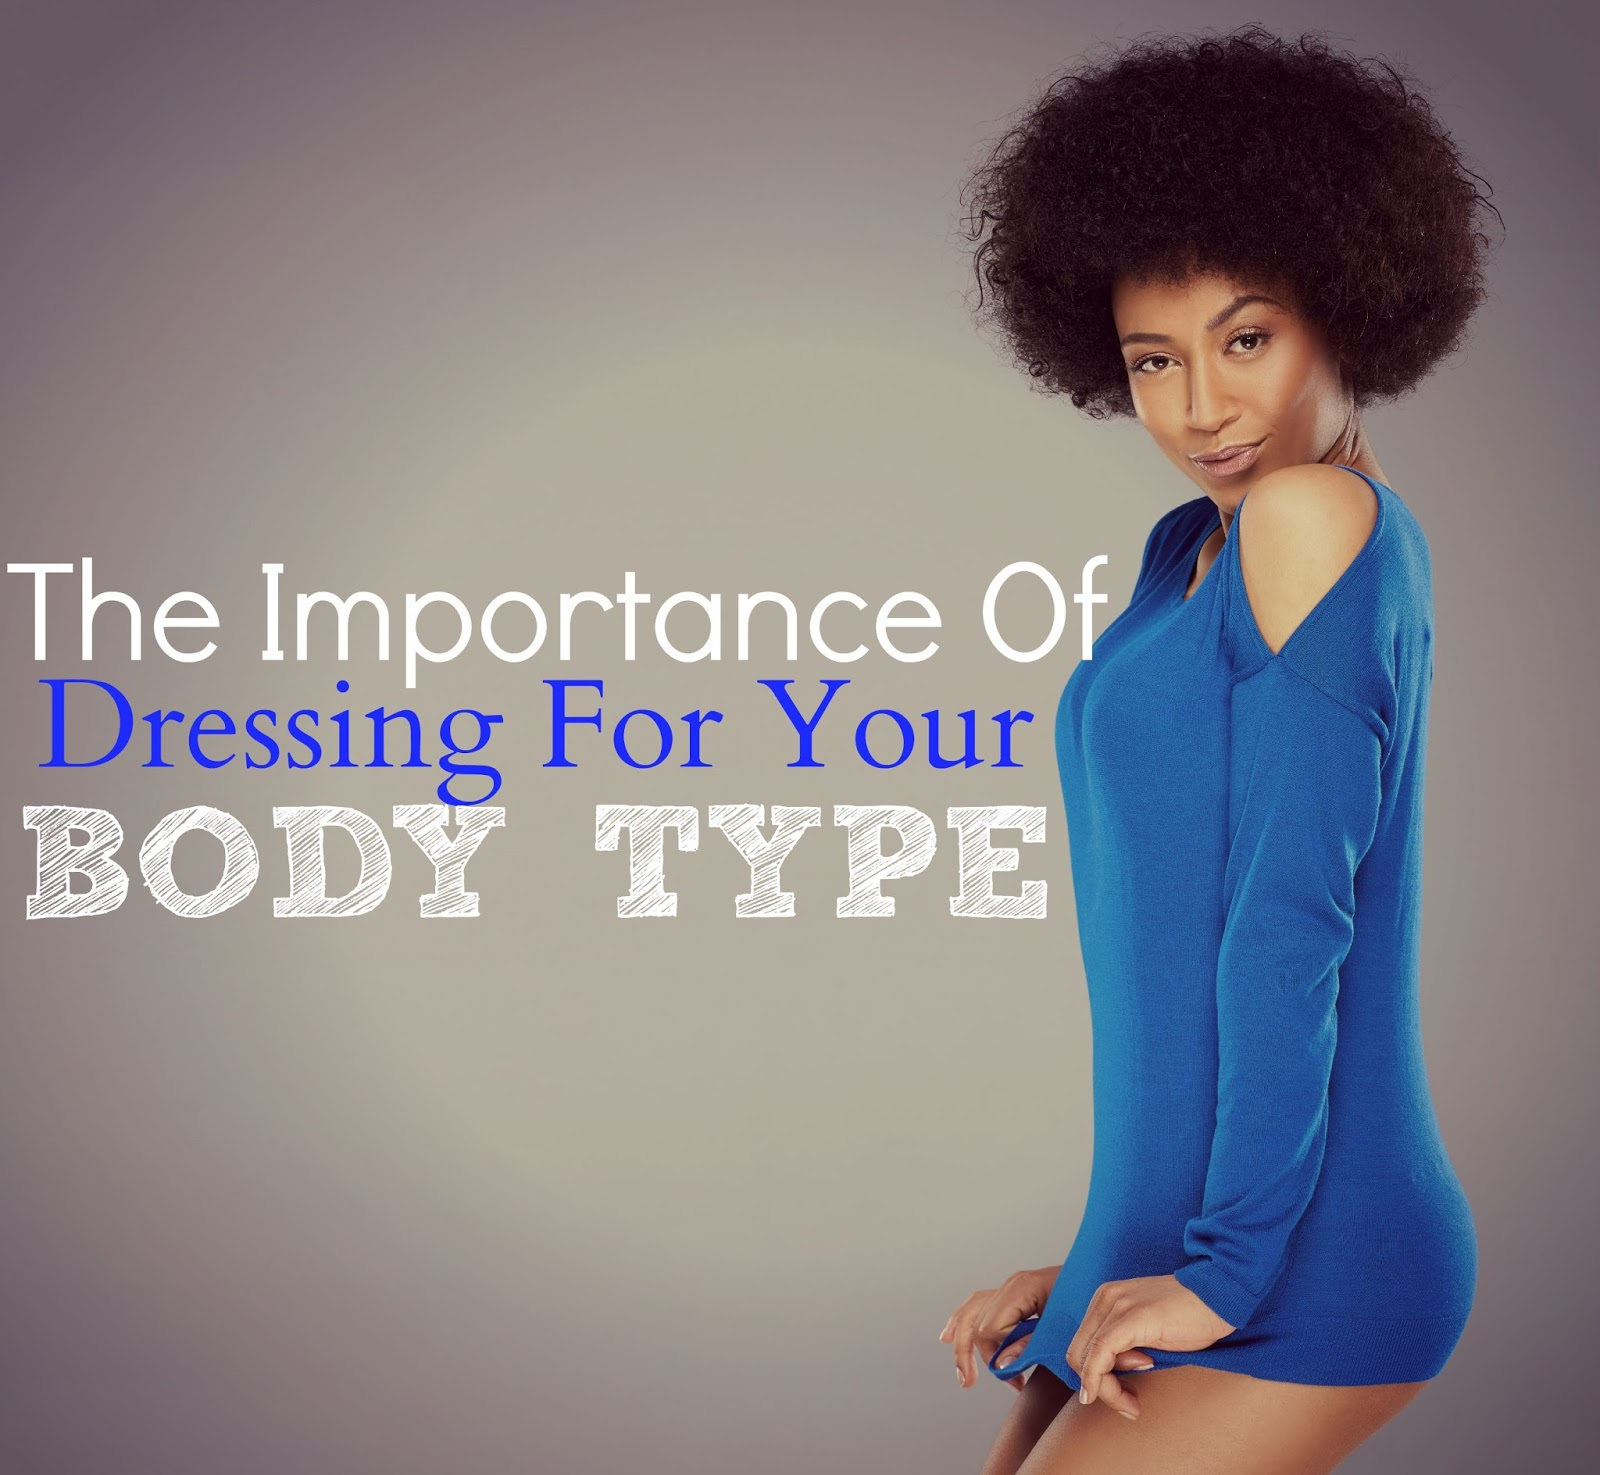 The Importance Of Dressing For Your Body Type